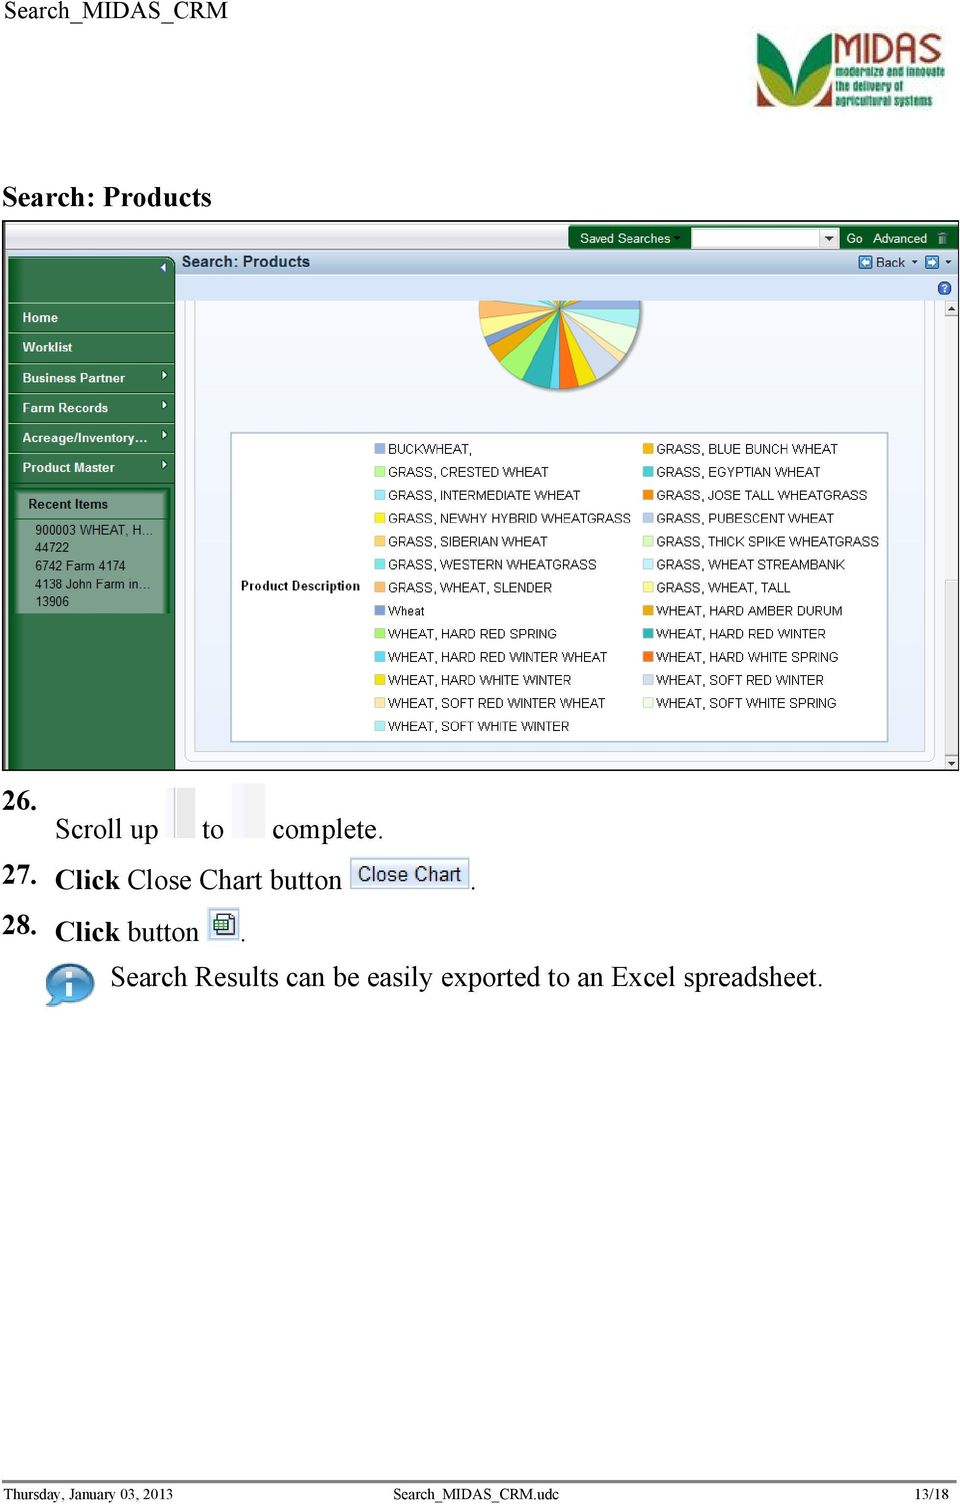 Search Results can be easily exported to an Excel